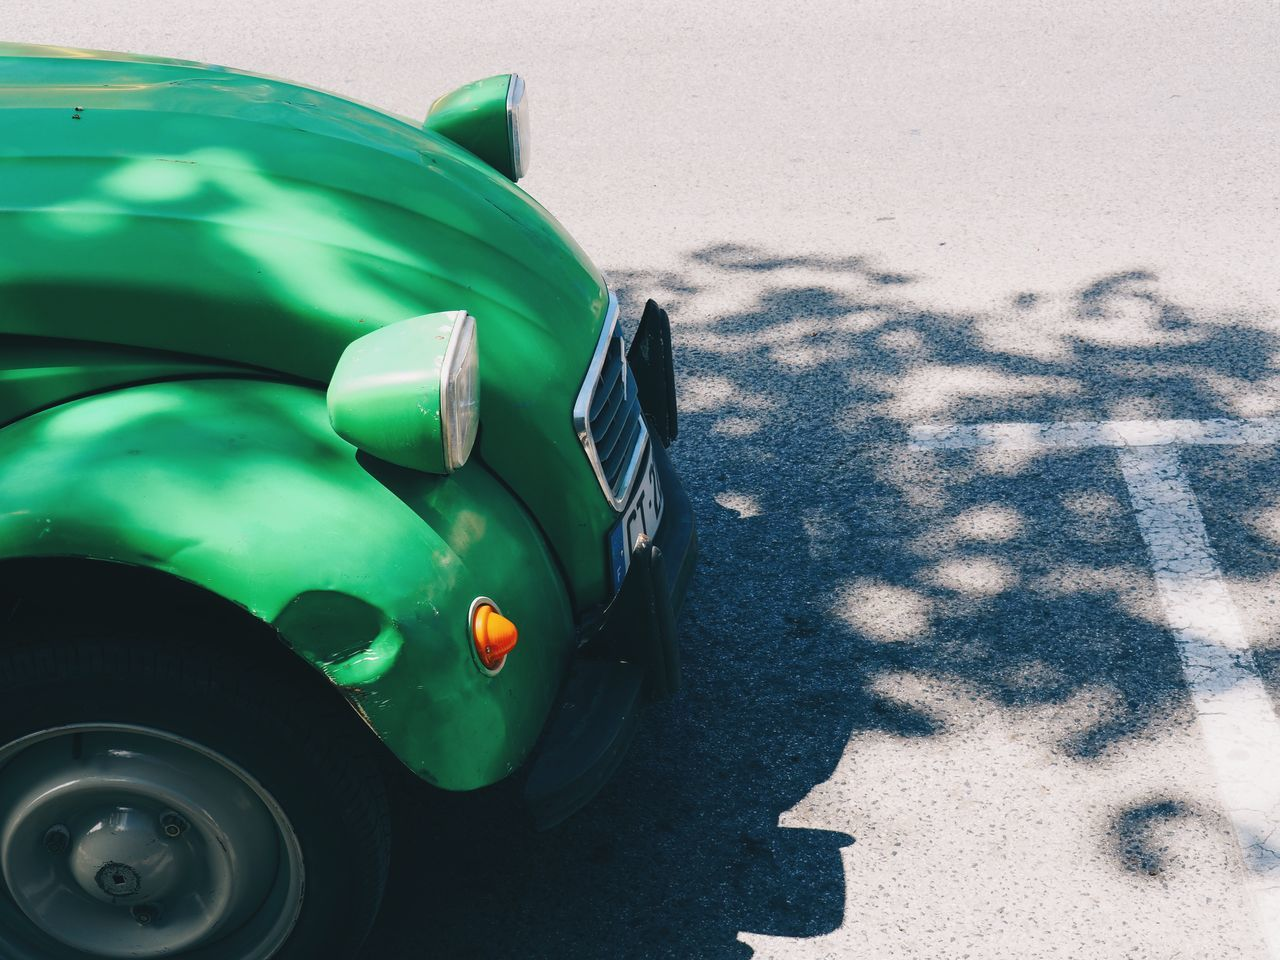 transportation, toy, mode of transport, car, land vehicle, green color, childhood, stationary, no people, day, road, shadow, outdoors, toy car, close-up, tire